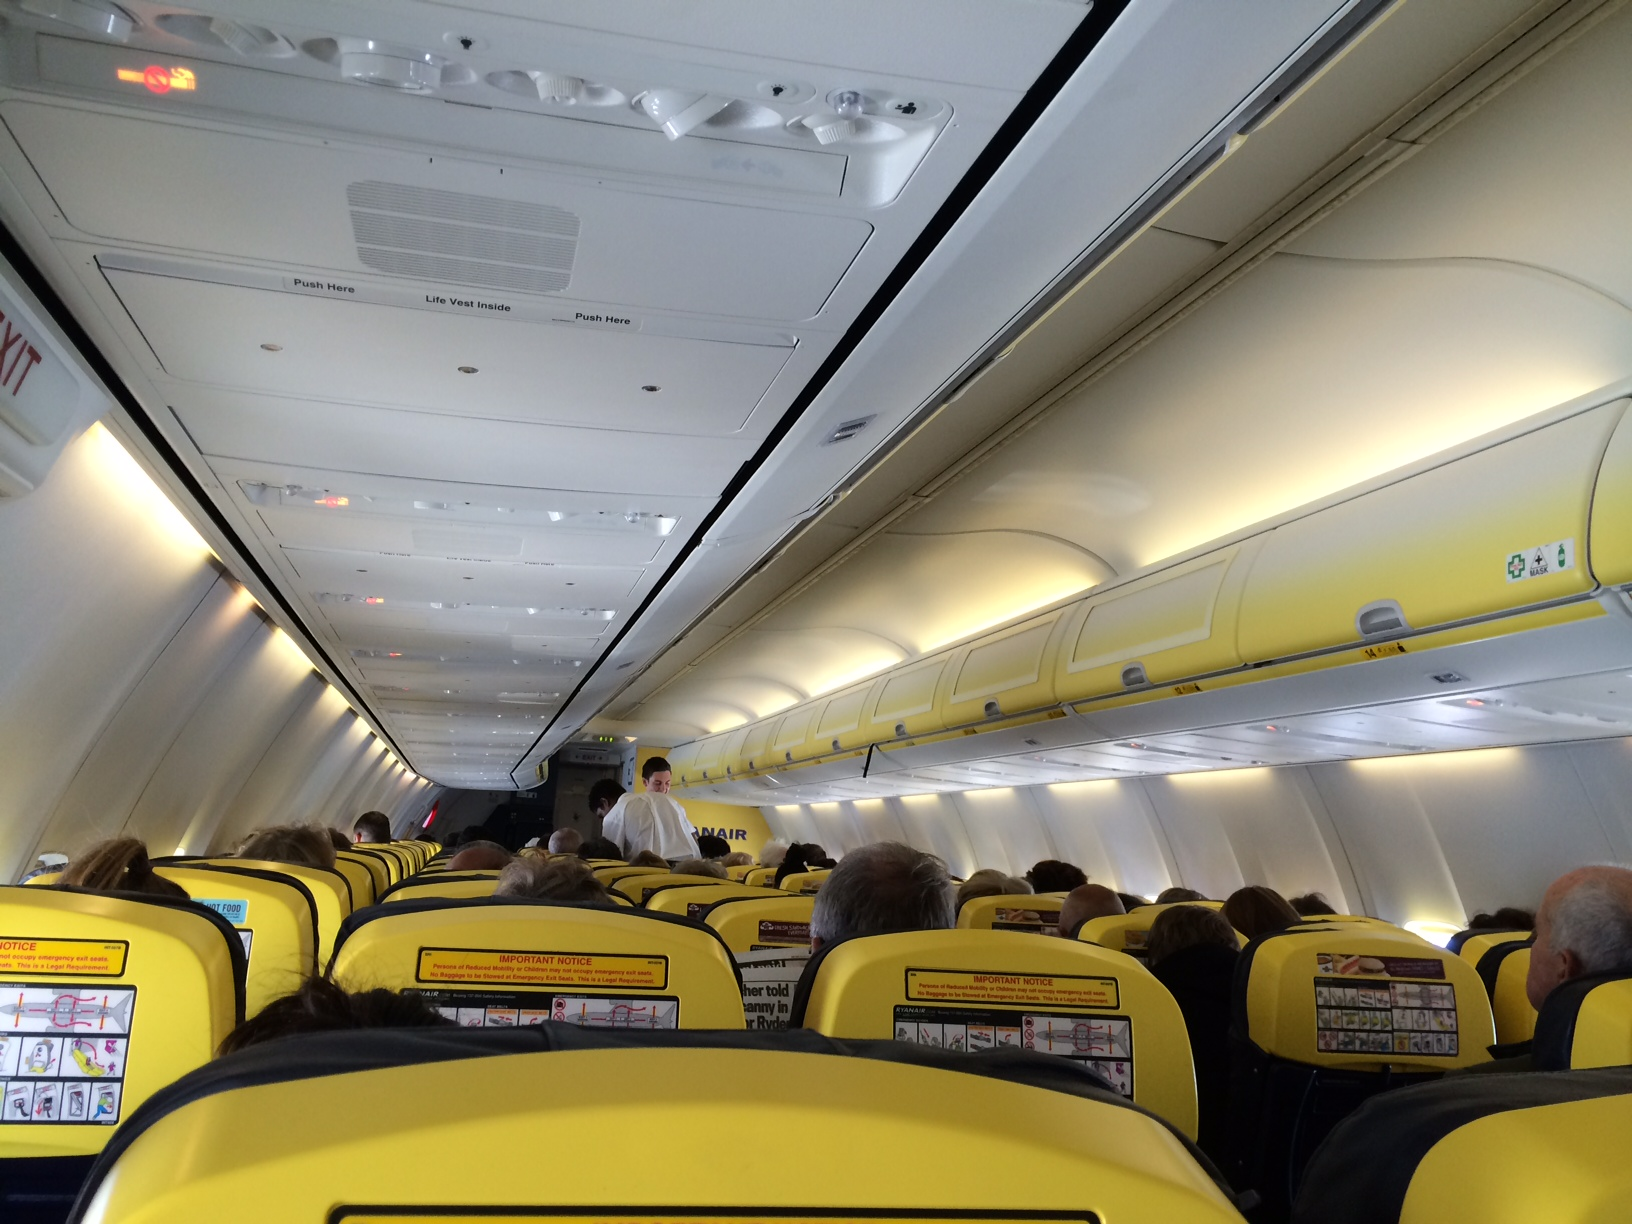 Bordeaux parc cairngorms voyage en ecosse episode 1 for Interieur avion ryanair